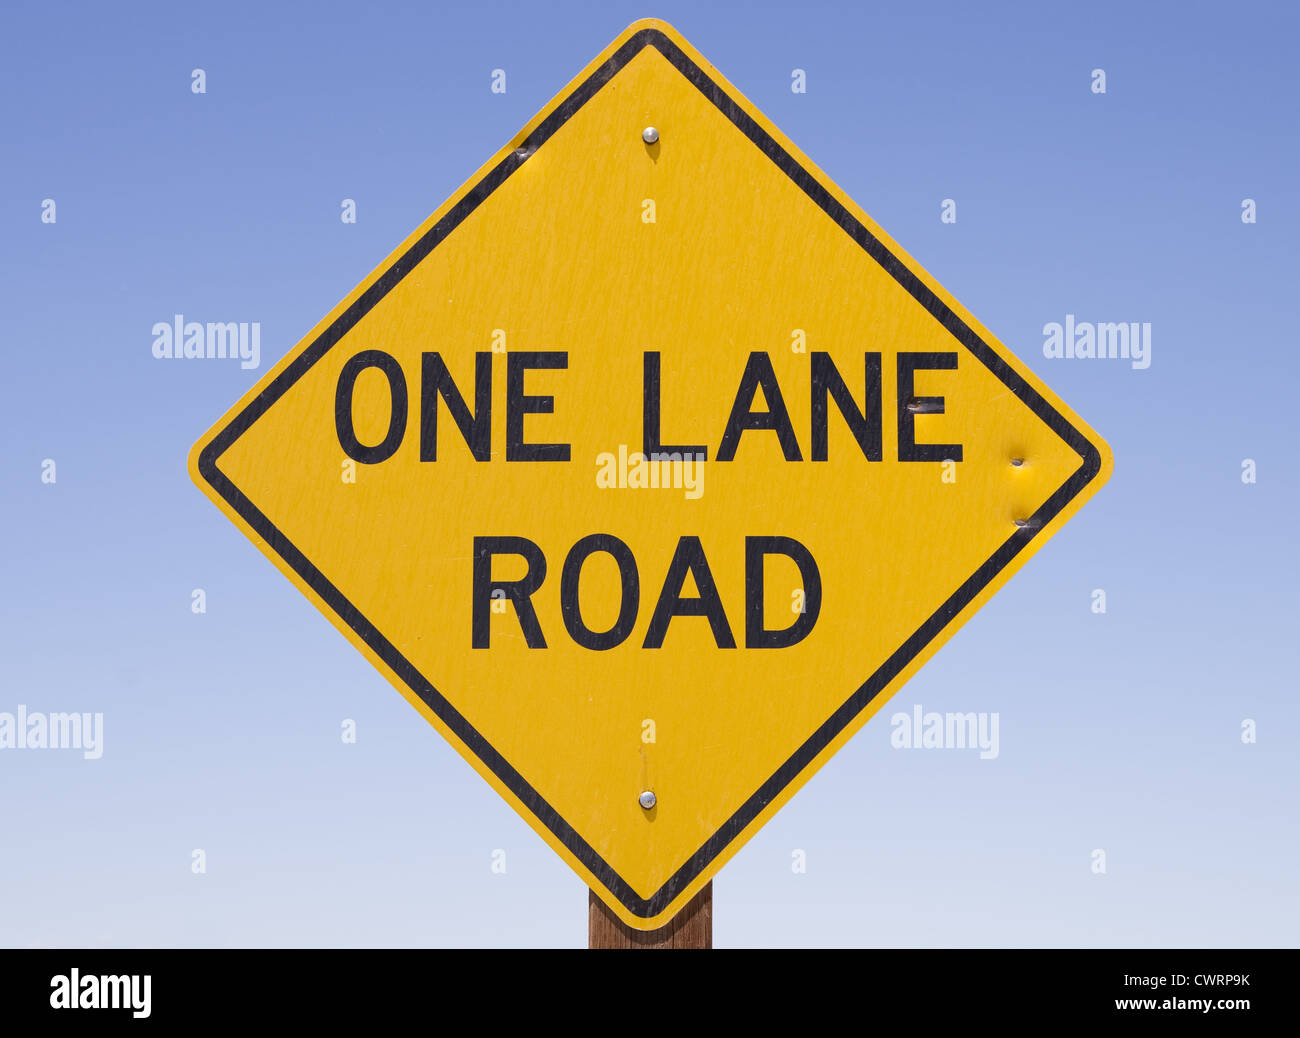 yellow and black one lane road sign with blue sky background - Stock Image